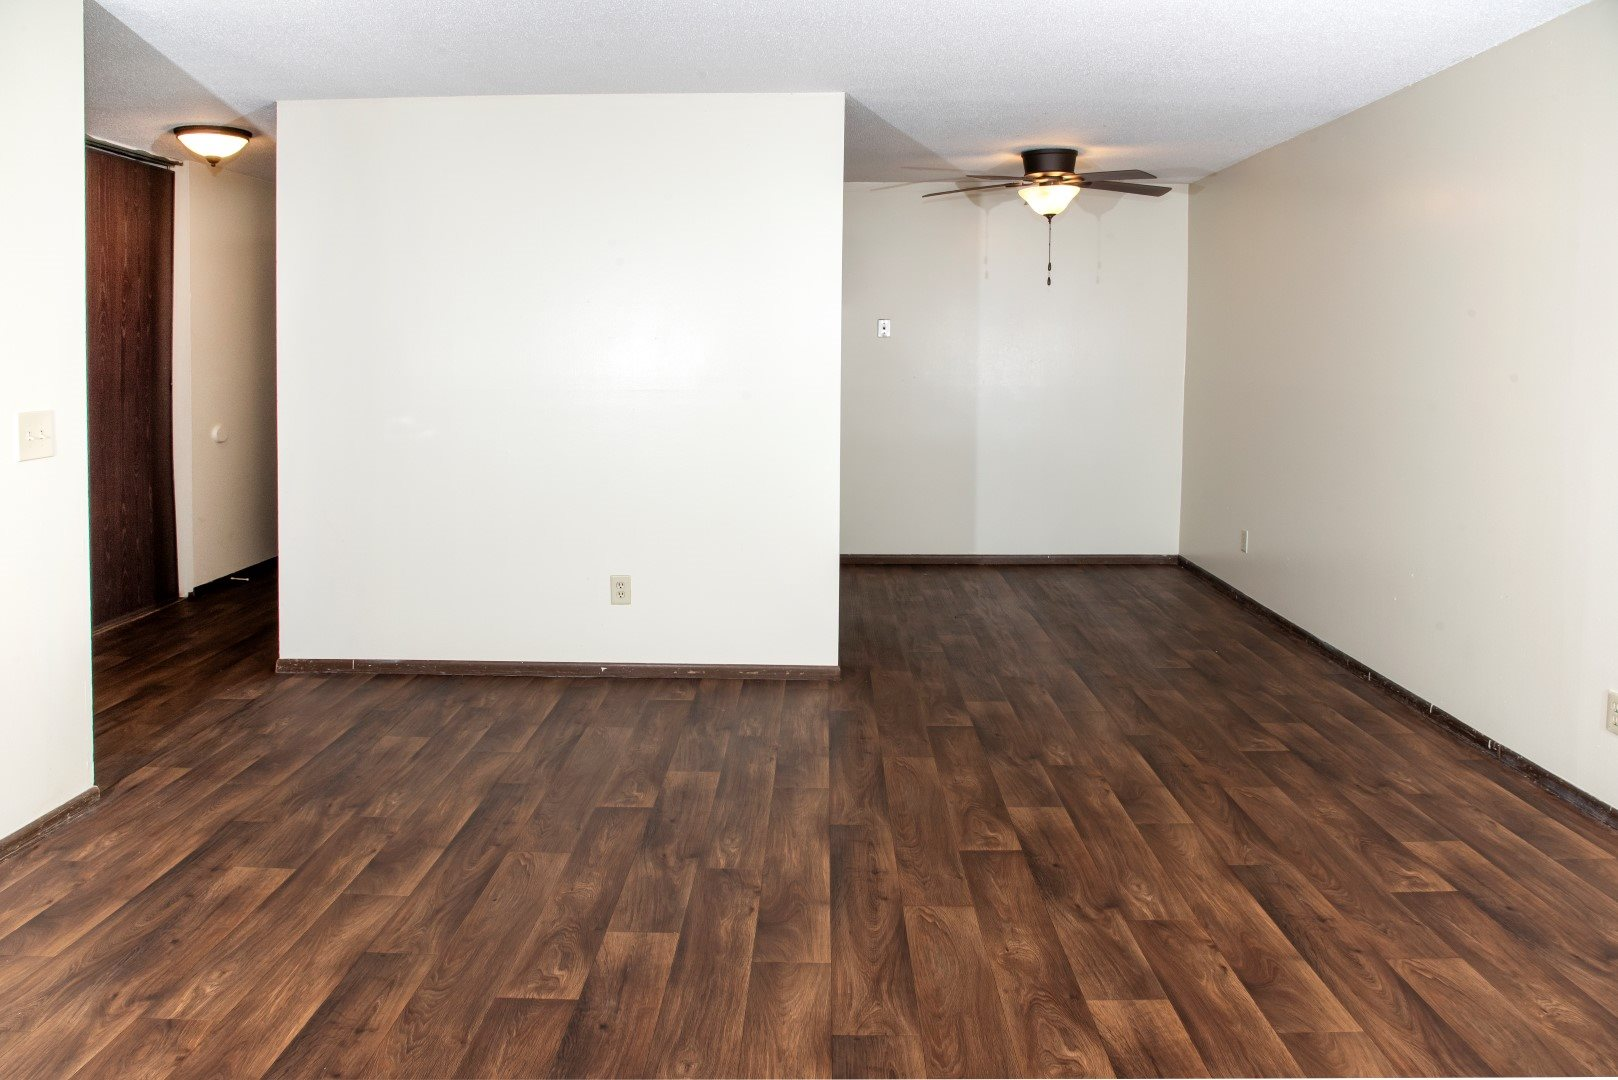 Vinyl wood look flooring throughout living spaces and kitchen